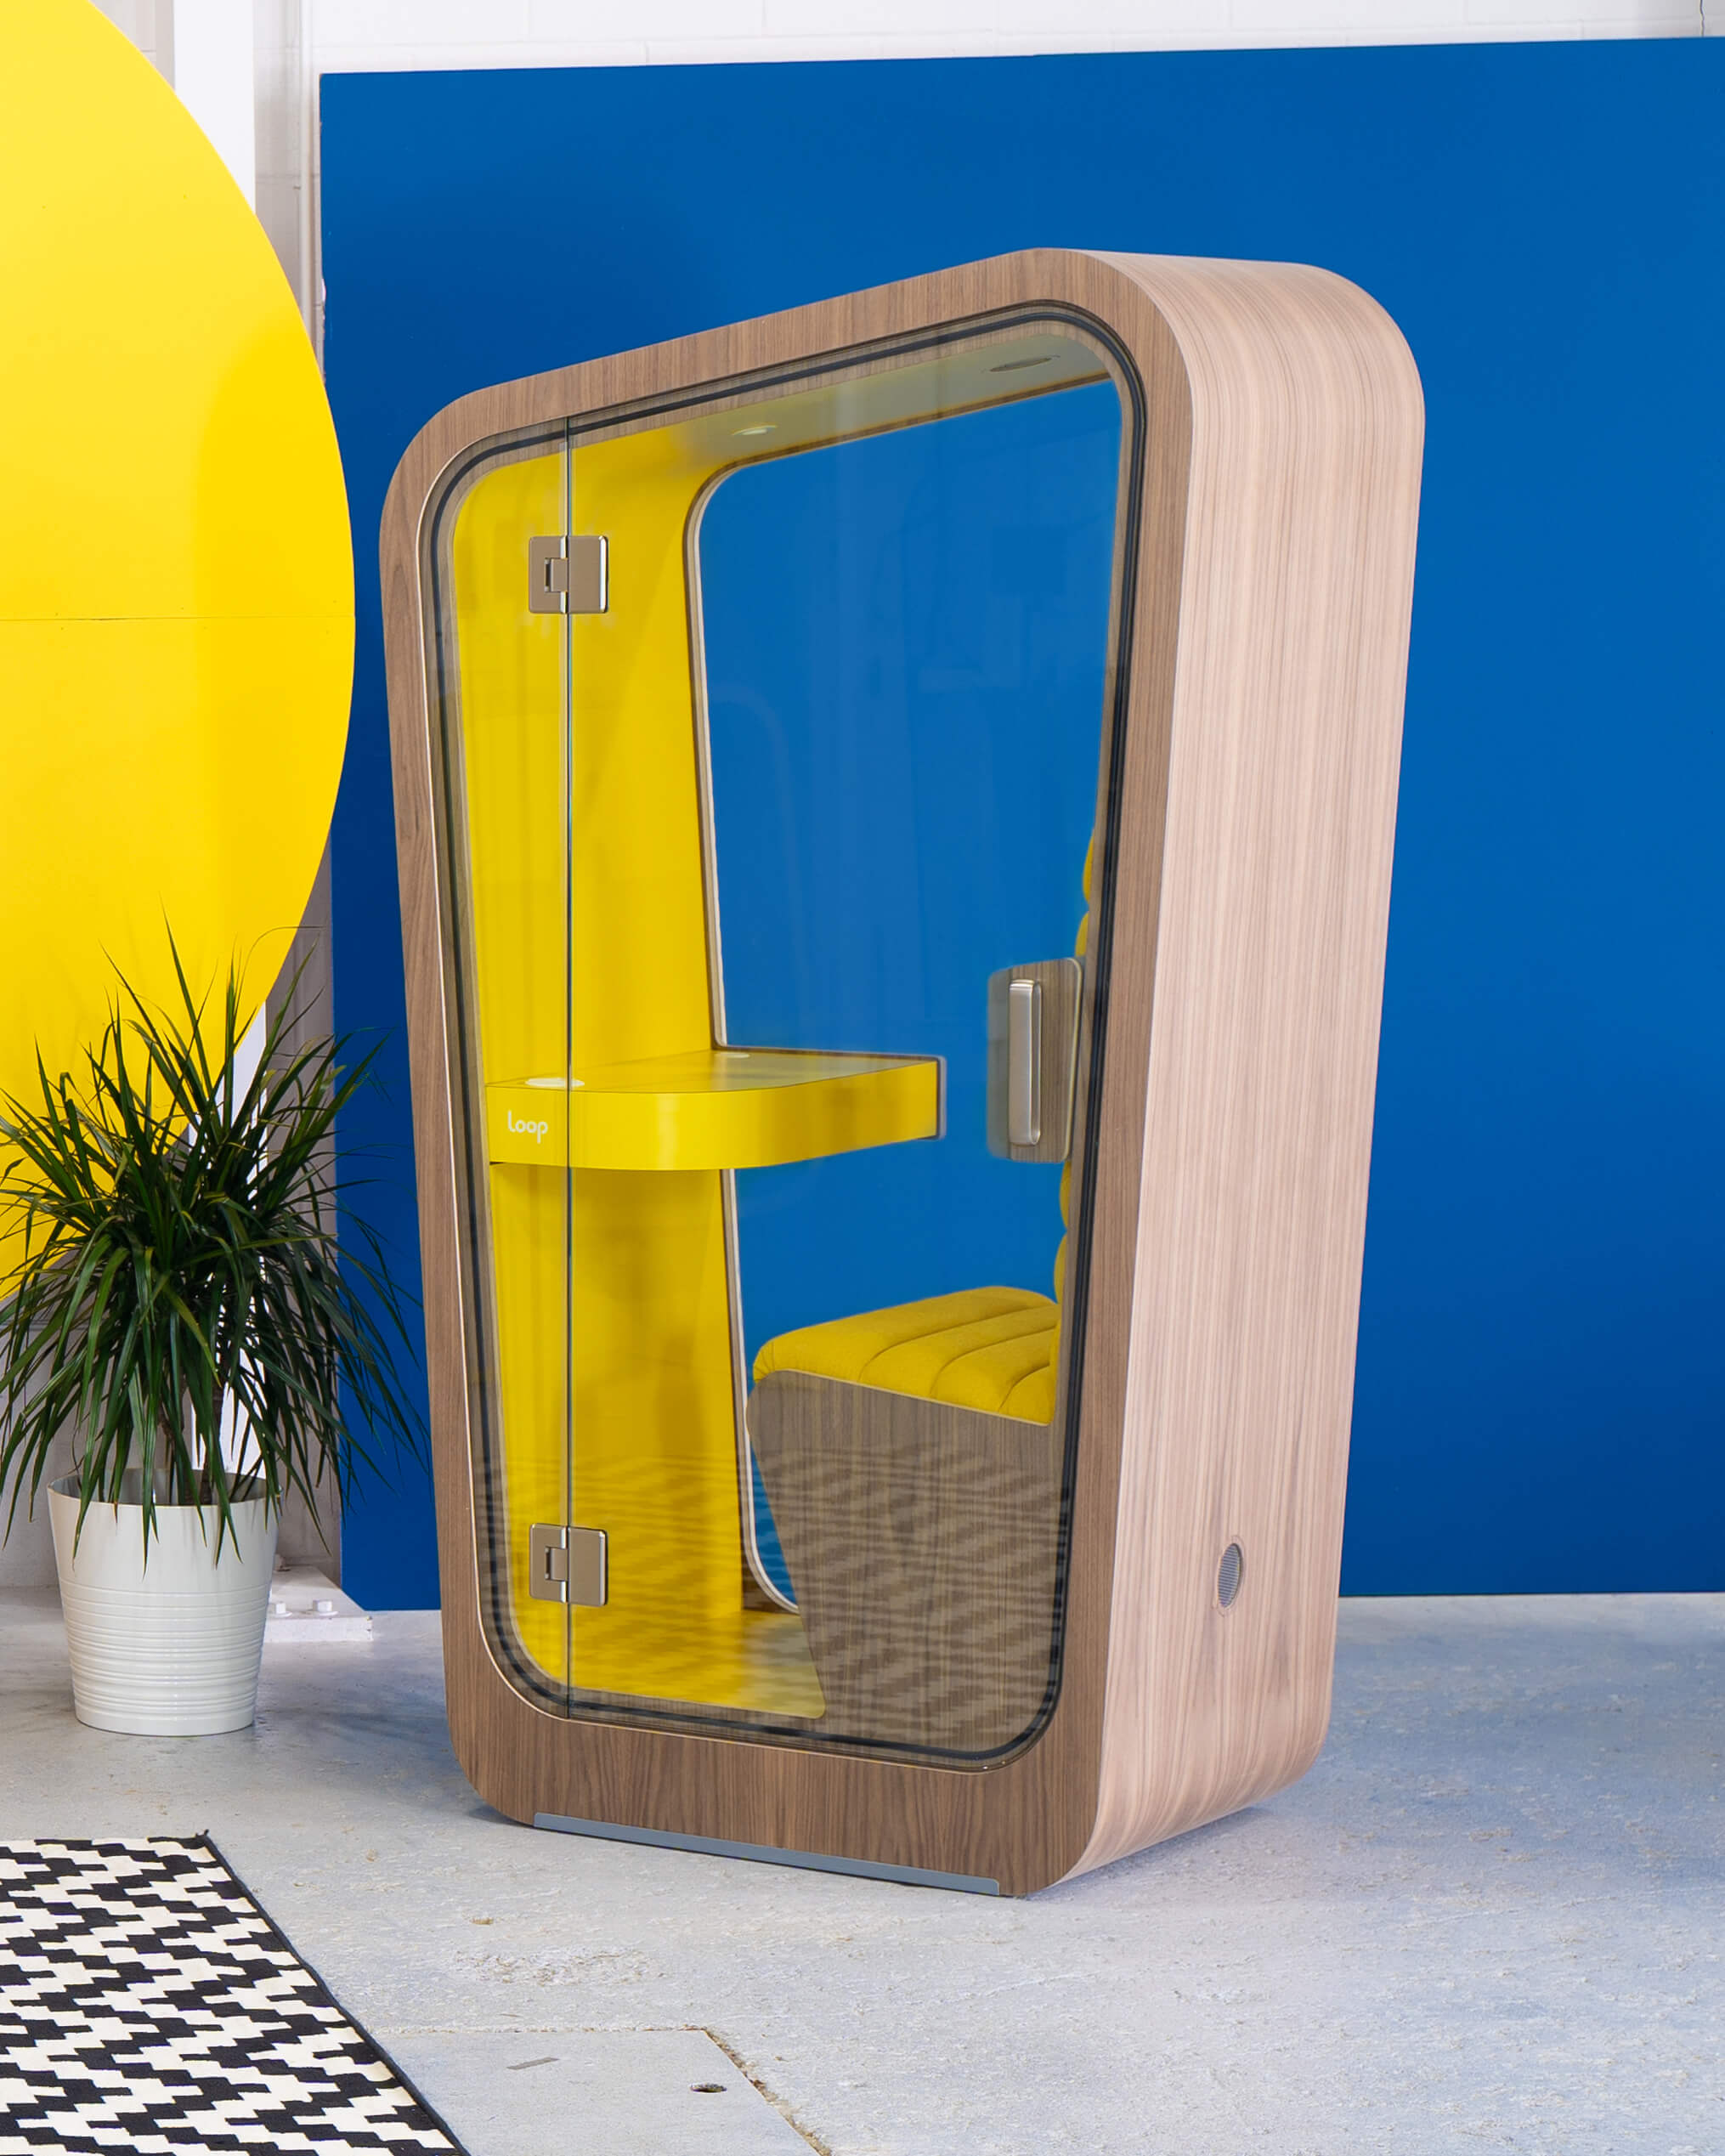 Office Phone Booth, soundproof phone booth for the office